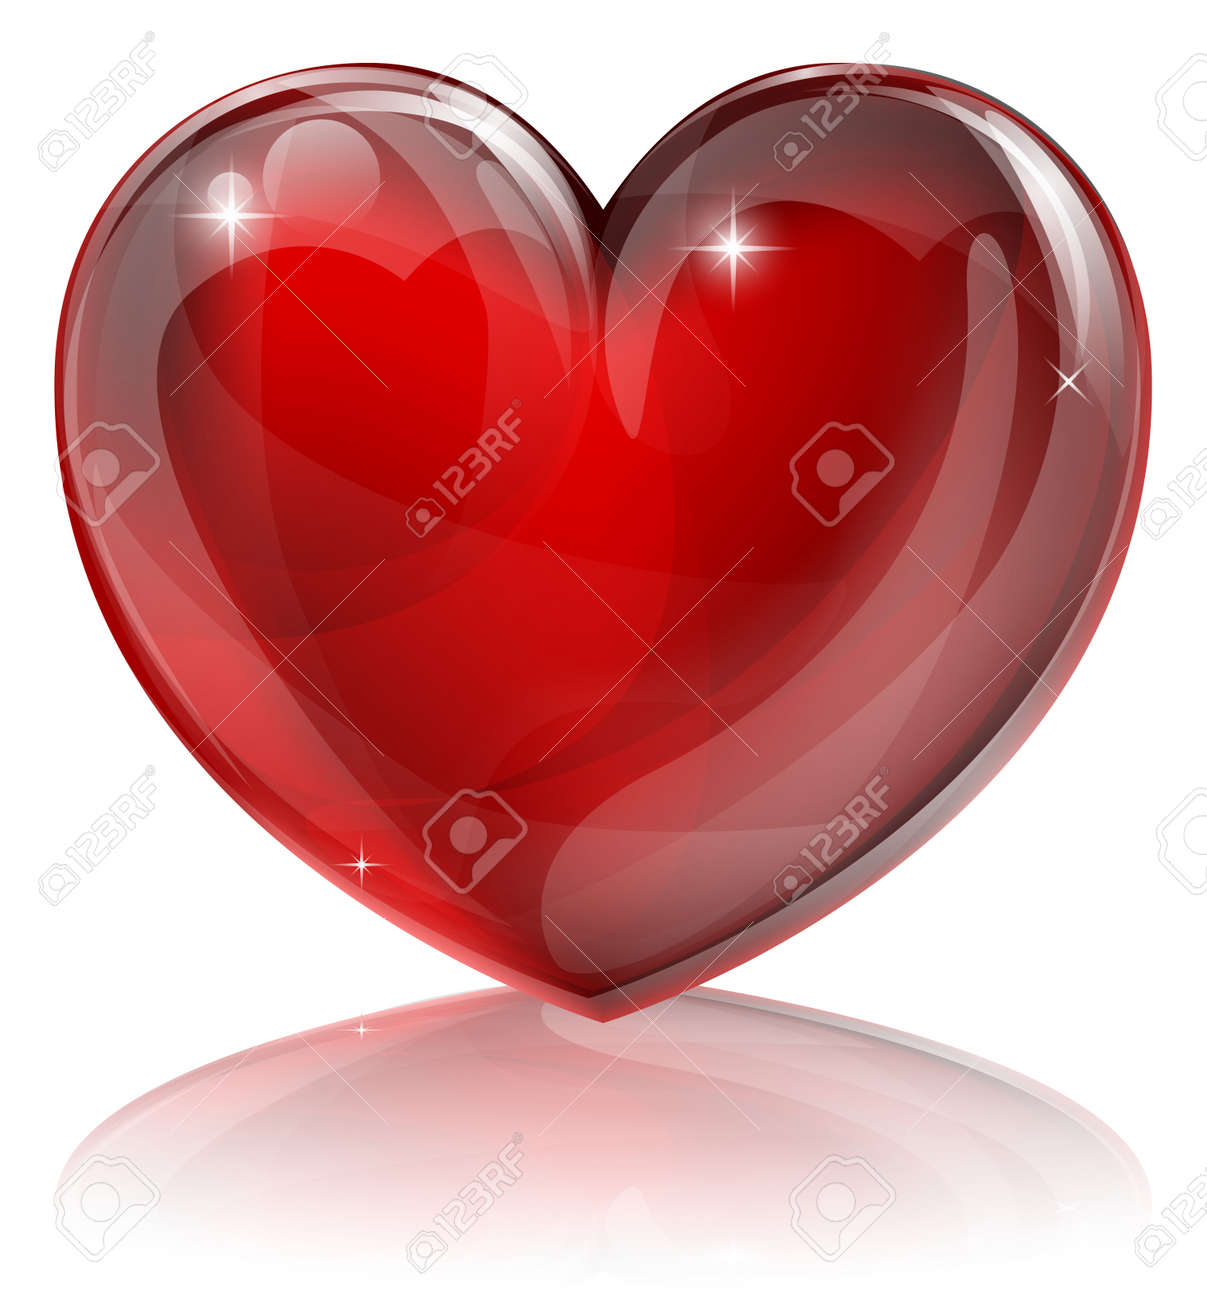 An illustration of a bright shiny red heart shaped symbol Stock Vector - 13158751